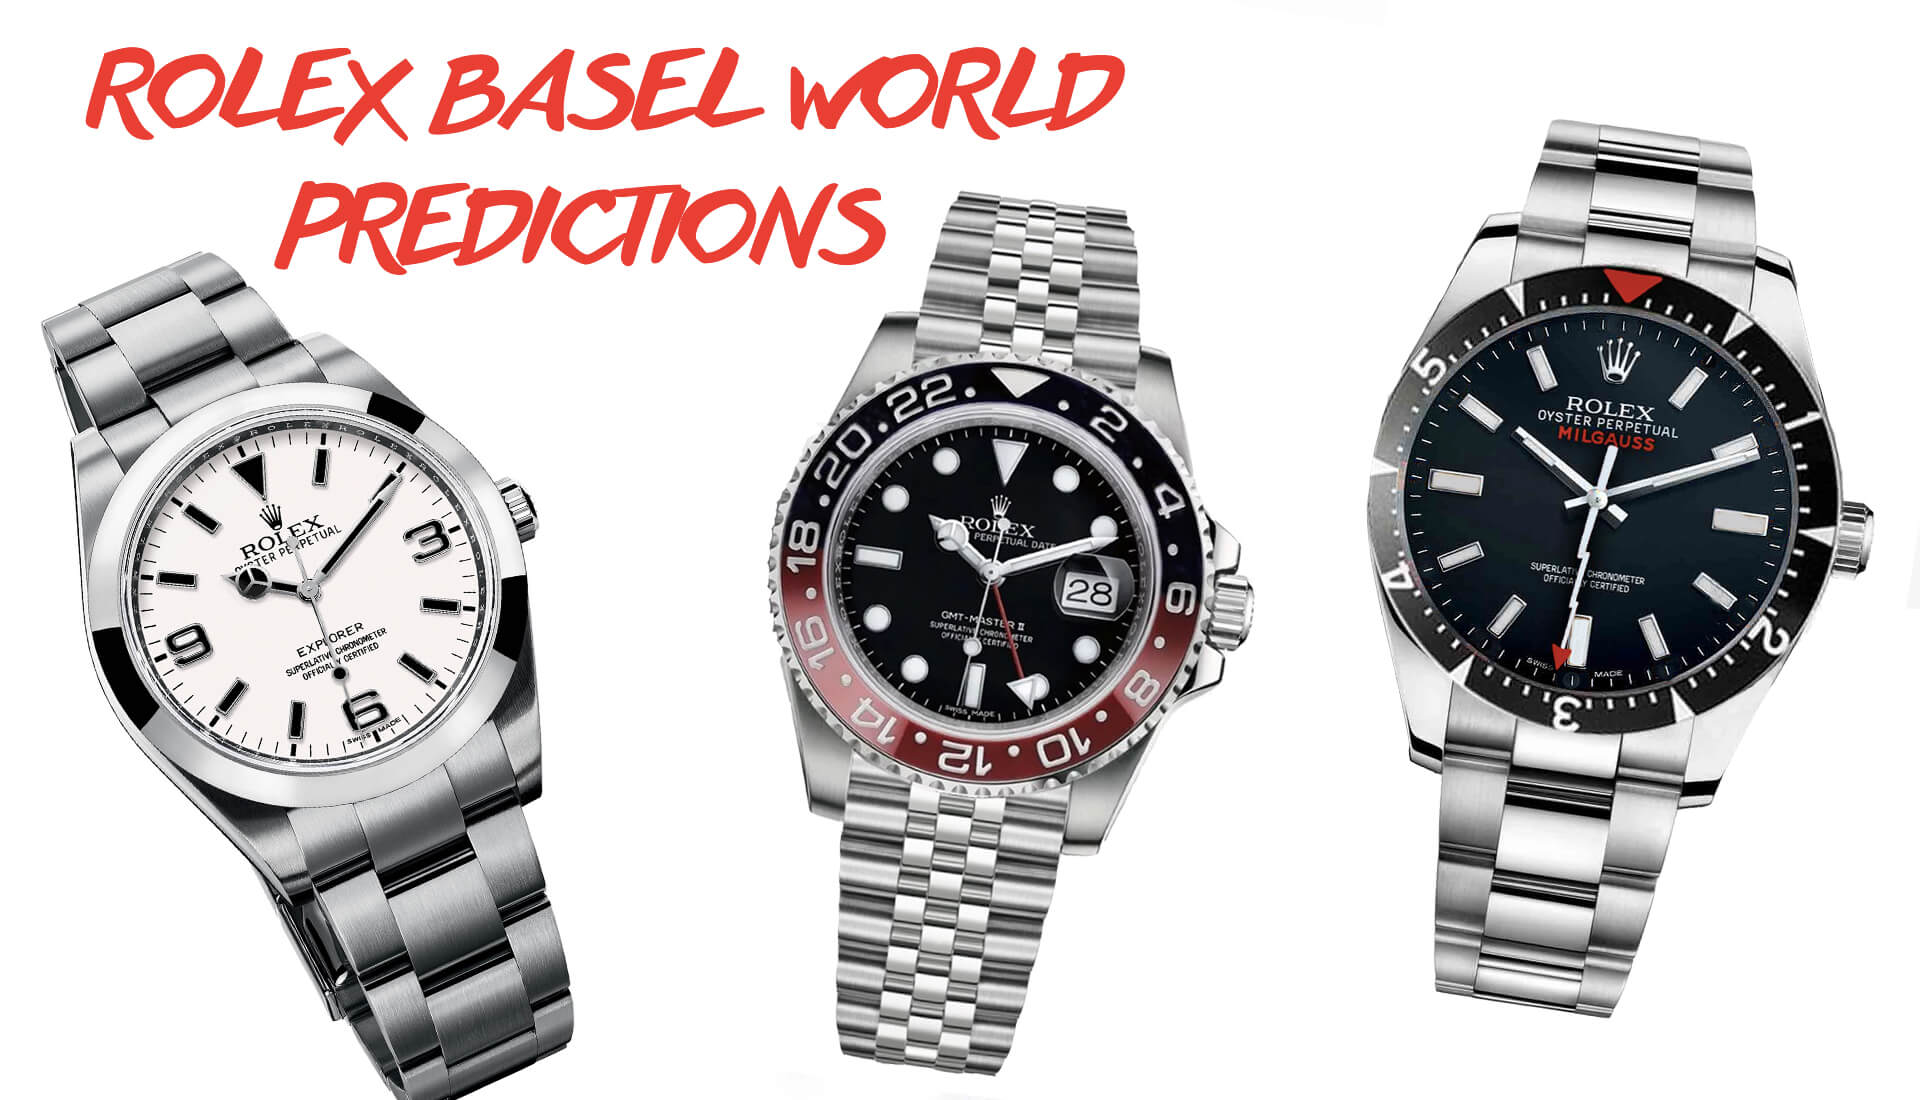 RANT&H: Rolex Basel World 2018 Predictions